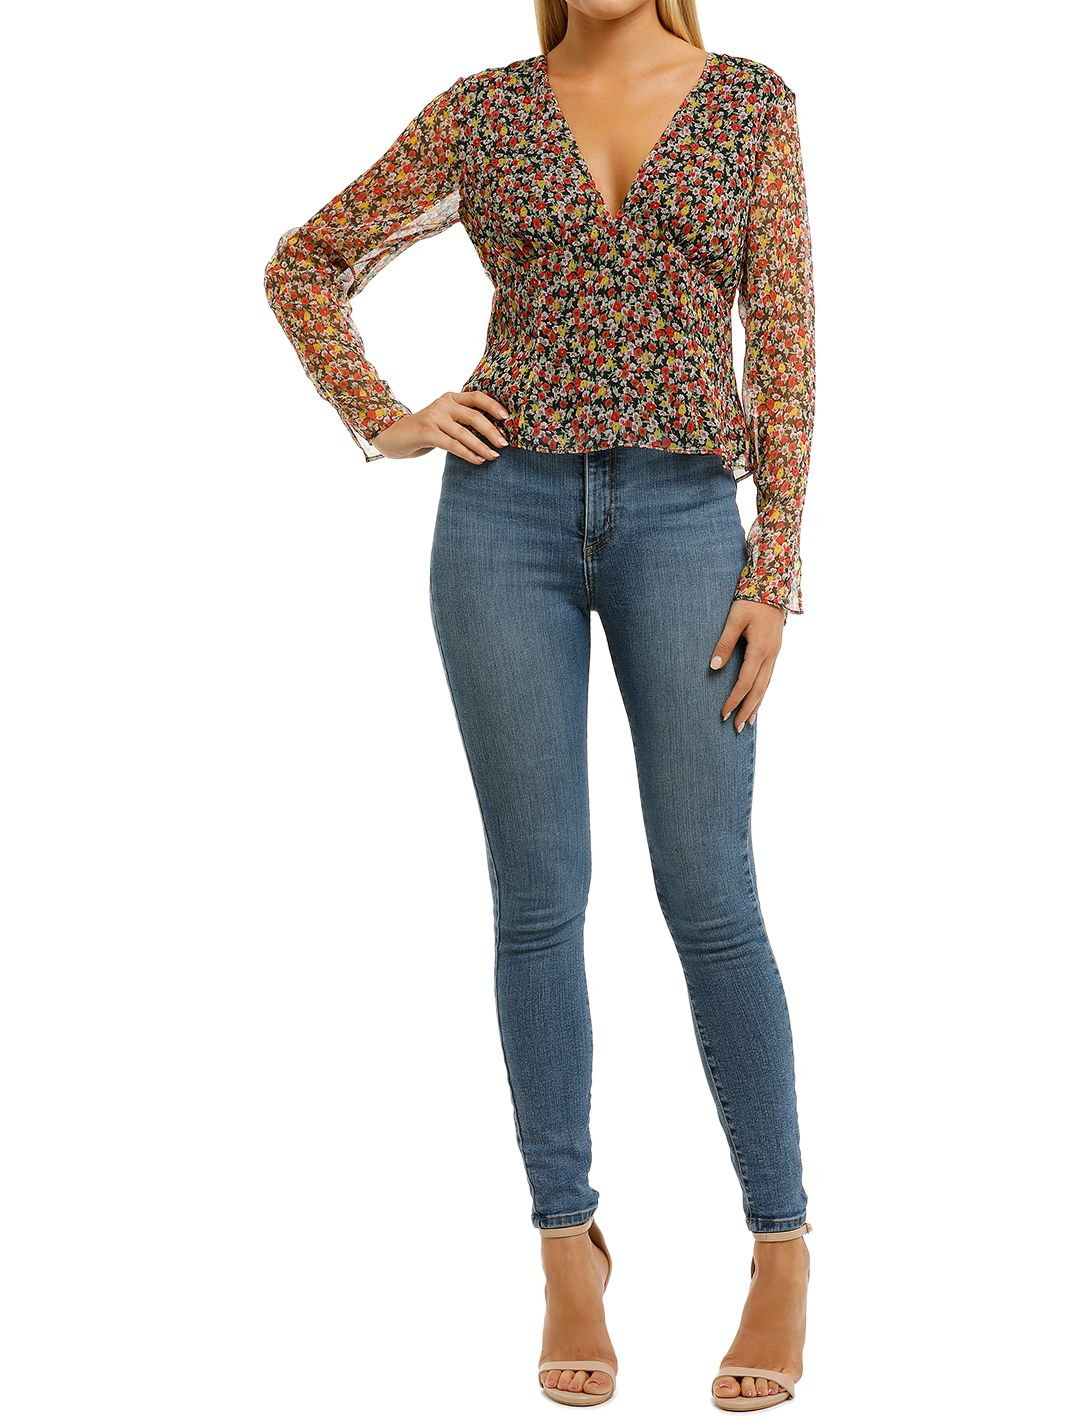 The-East-Order-Brooklyn-LS-Top-Sunrise-Bouquet-Front